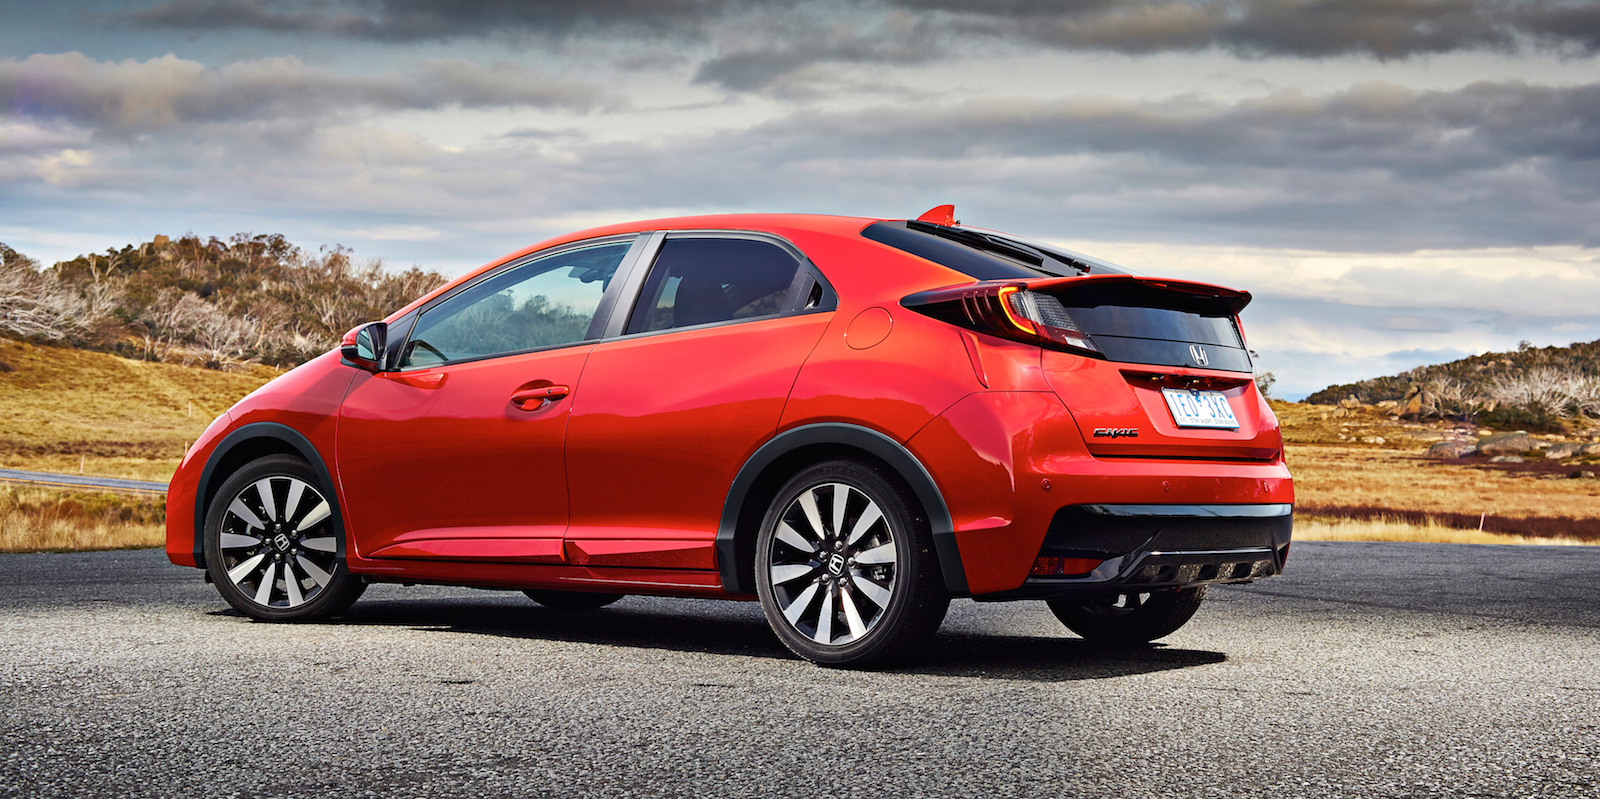 2015 Honda Civic hatch pricing and specifications - photos ...